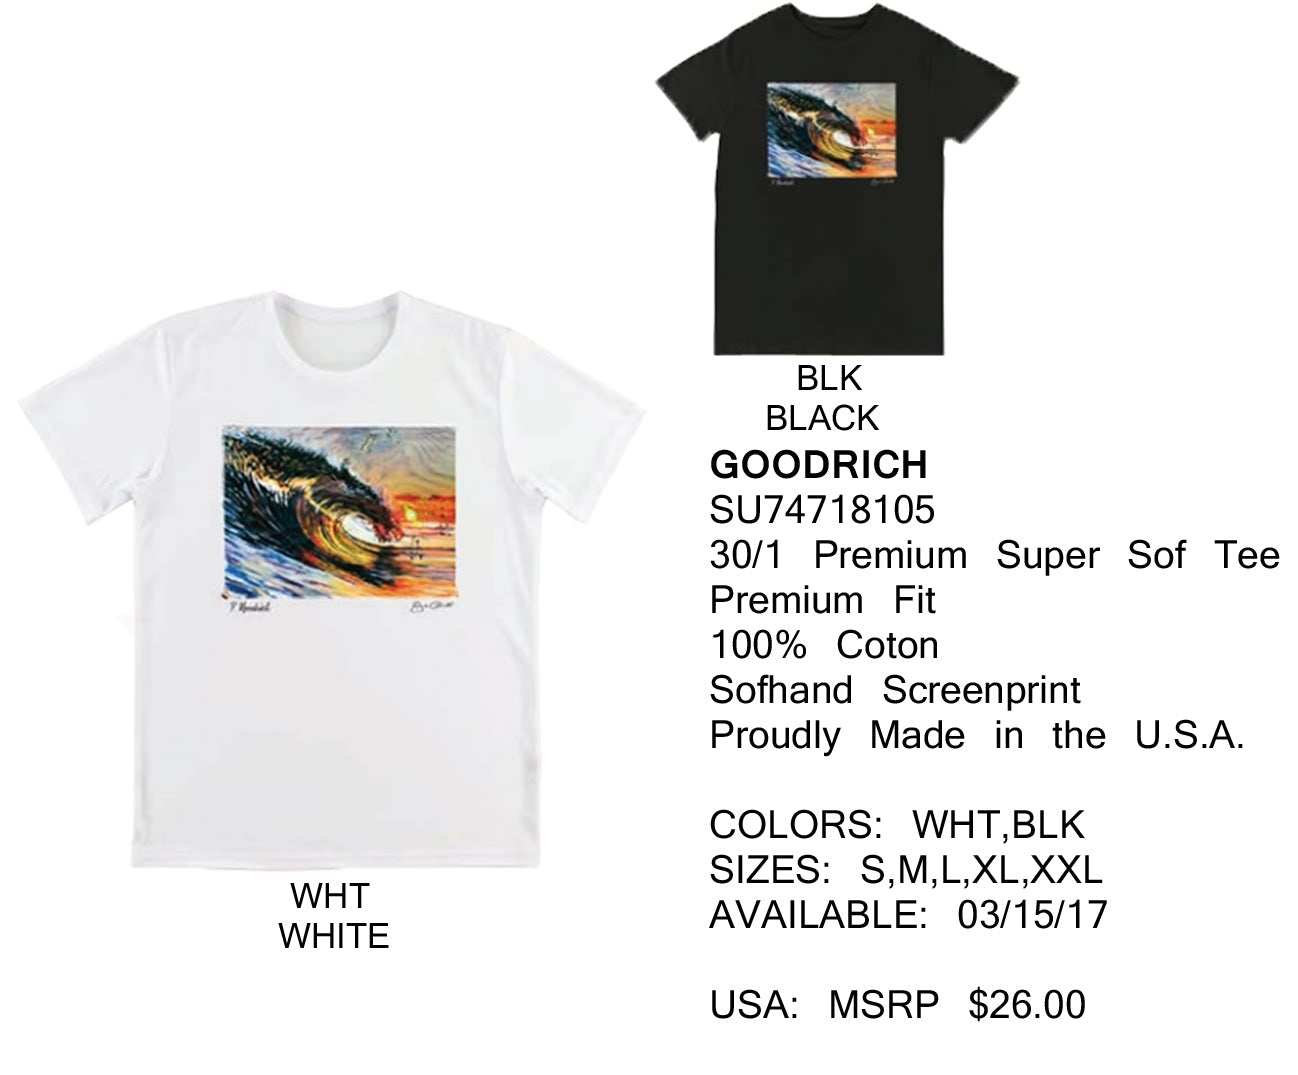 Jack O'Neill Summer 2017 Tees Shirts Collection